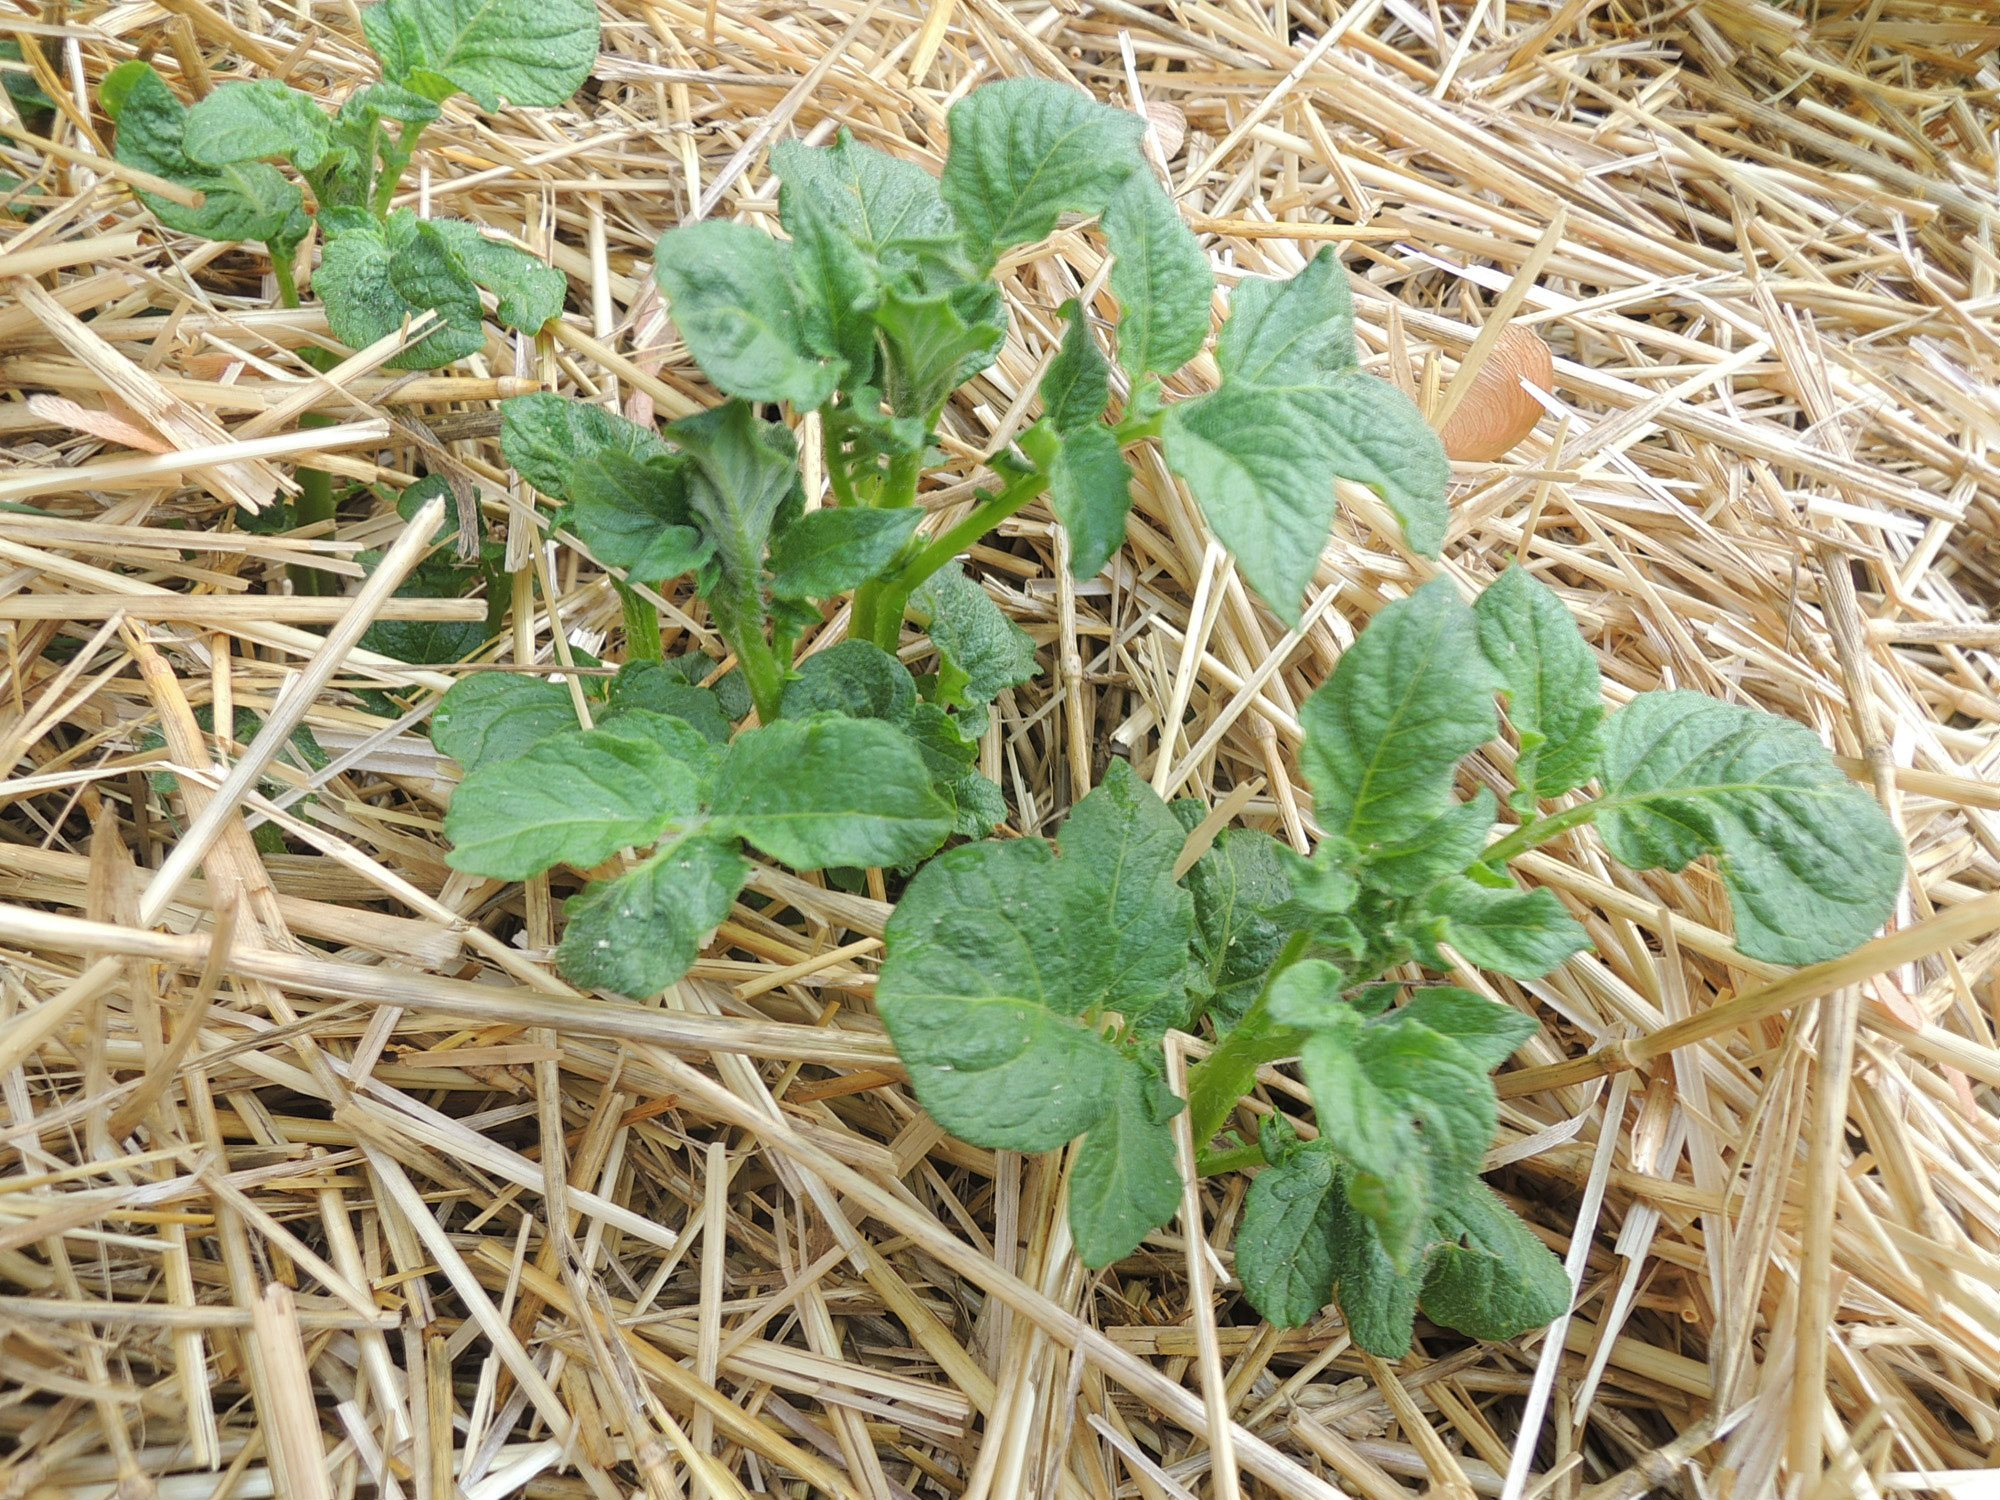 Information On Planting Potatoes In Straw